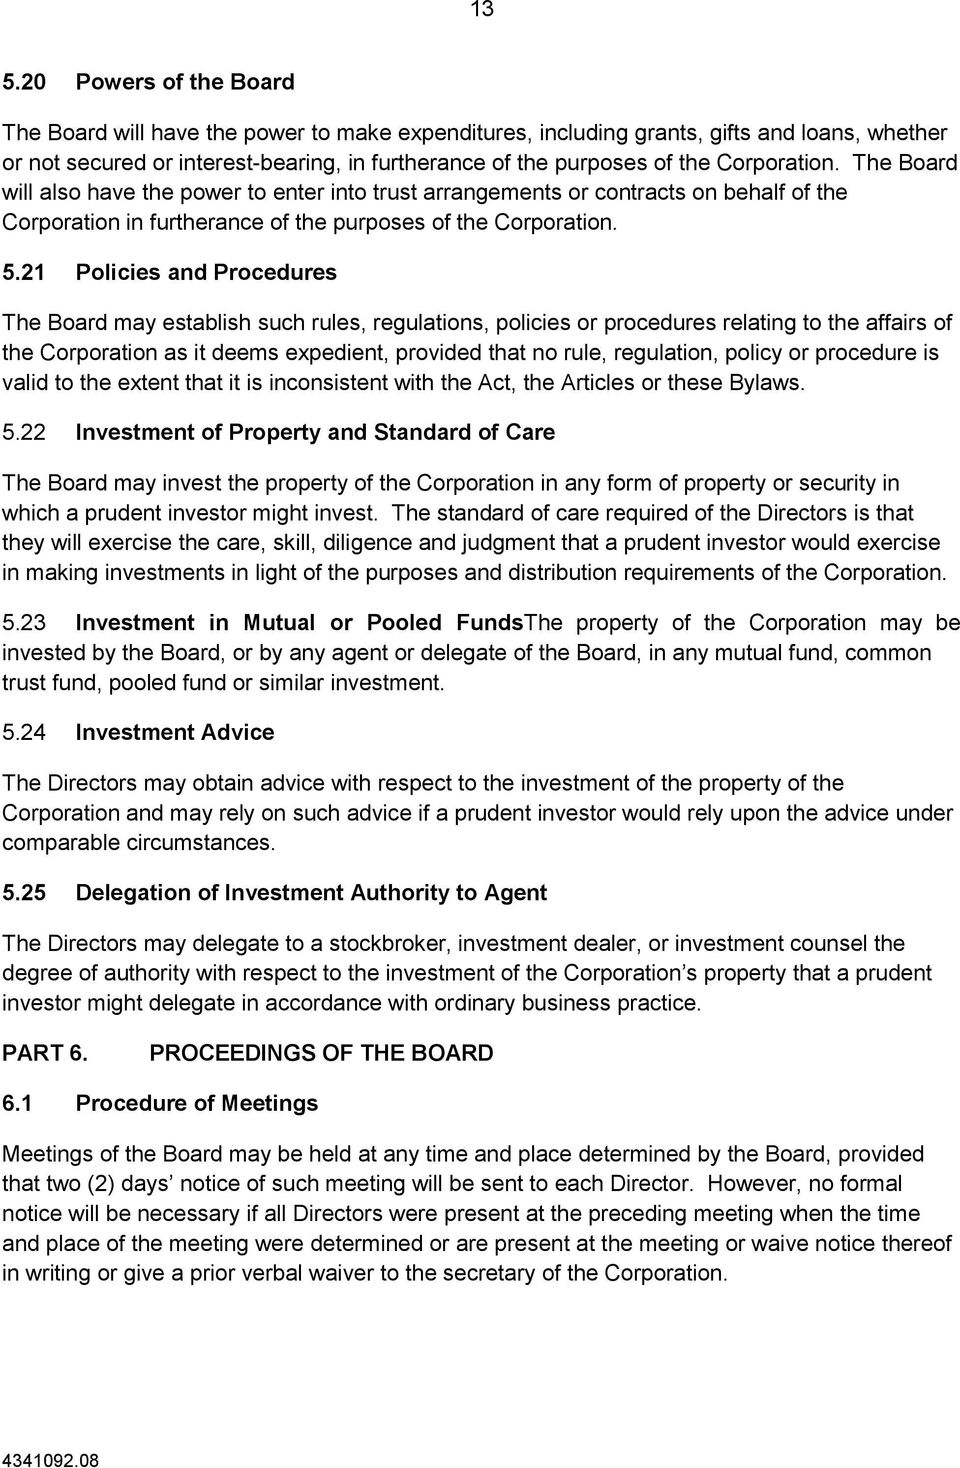 21 Policies and Procedures The Board may establish such rules, regulations, policies or procedures relating to the affairs of the Corporation as it deems expedient, provided that no rule, regulation,